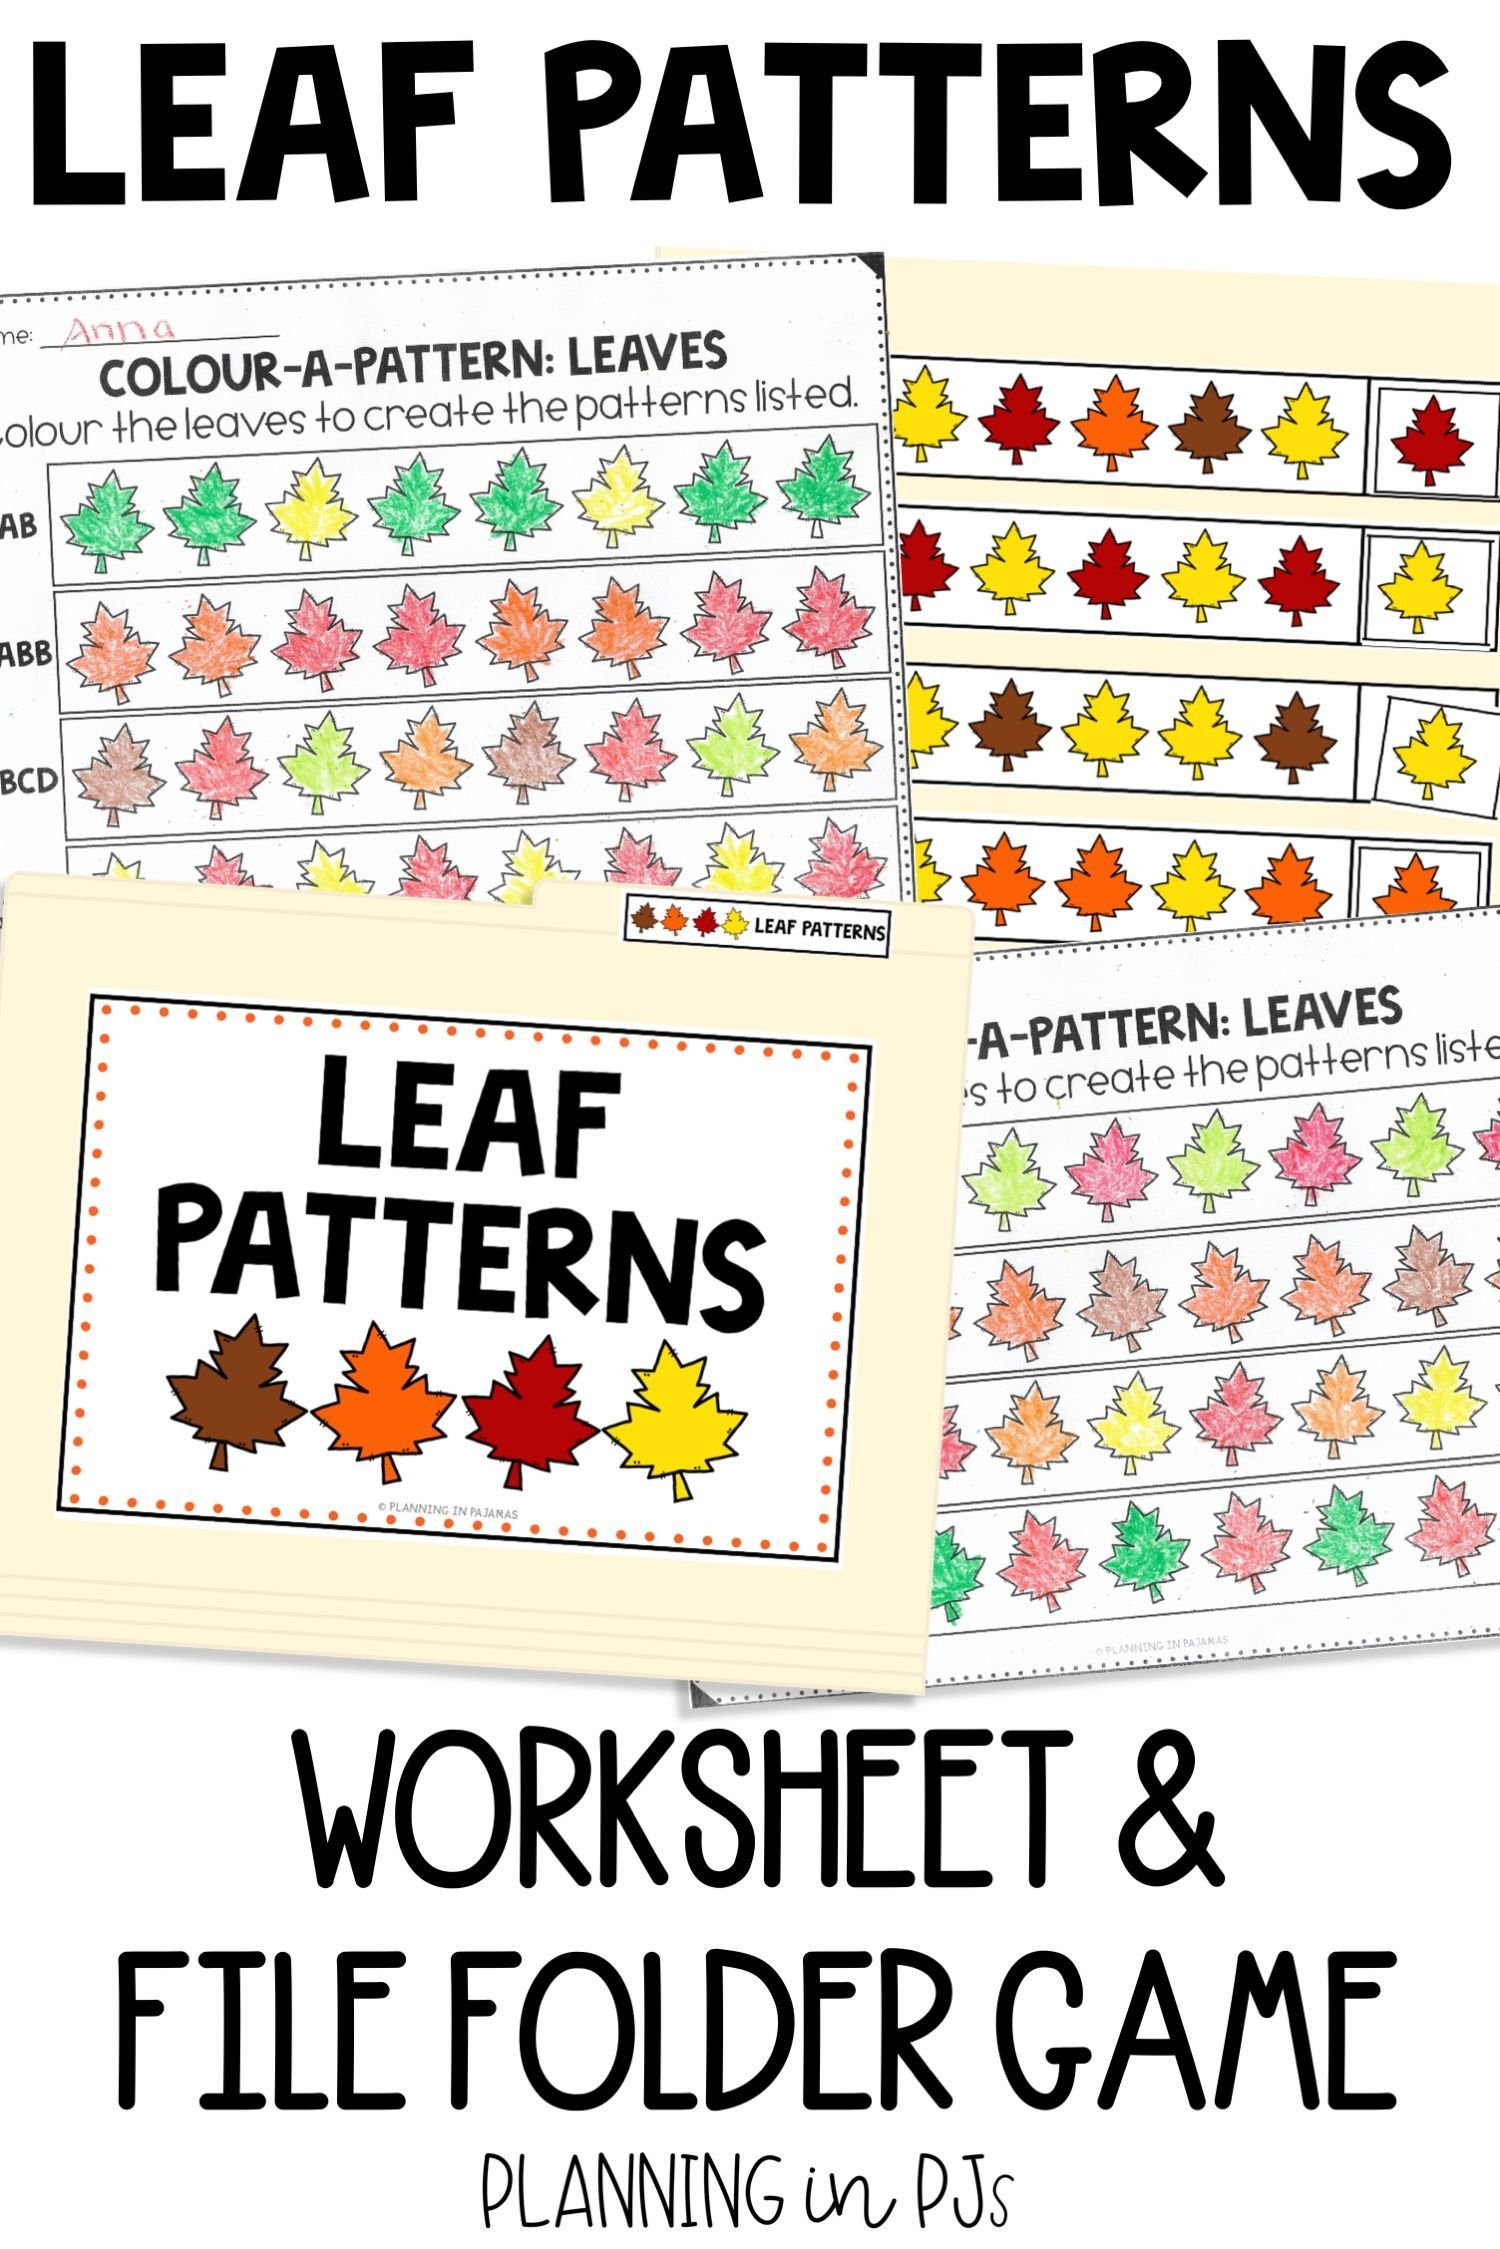 Leaf Patterns Worksheets File Folder Game